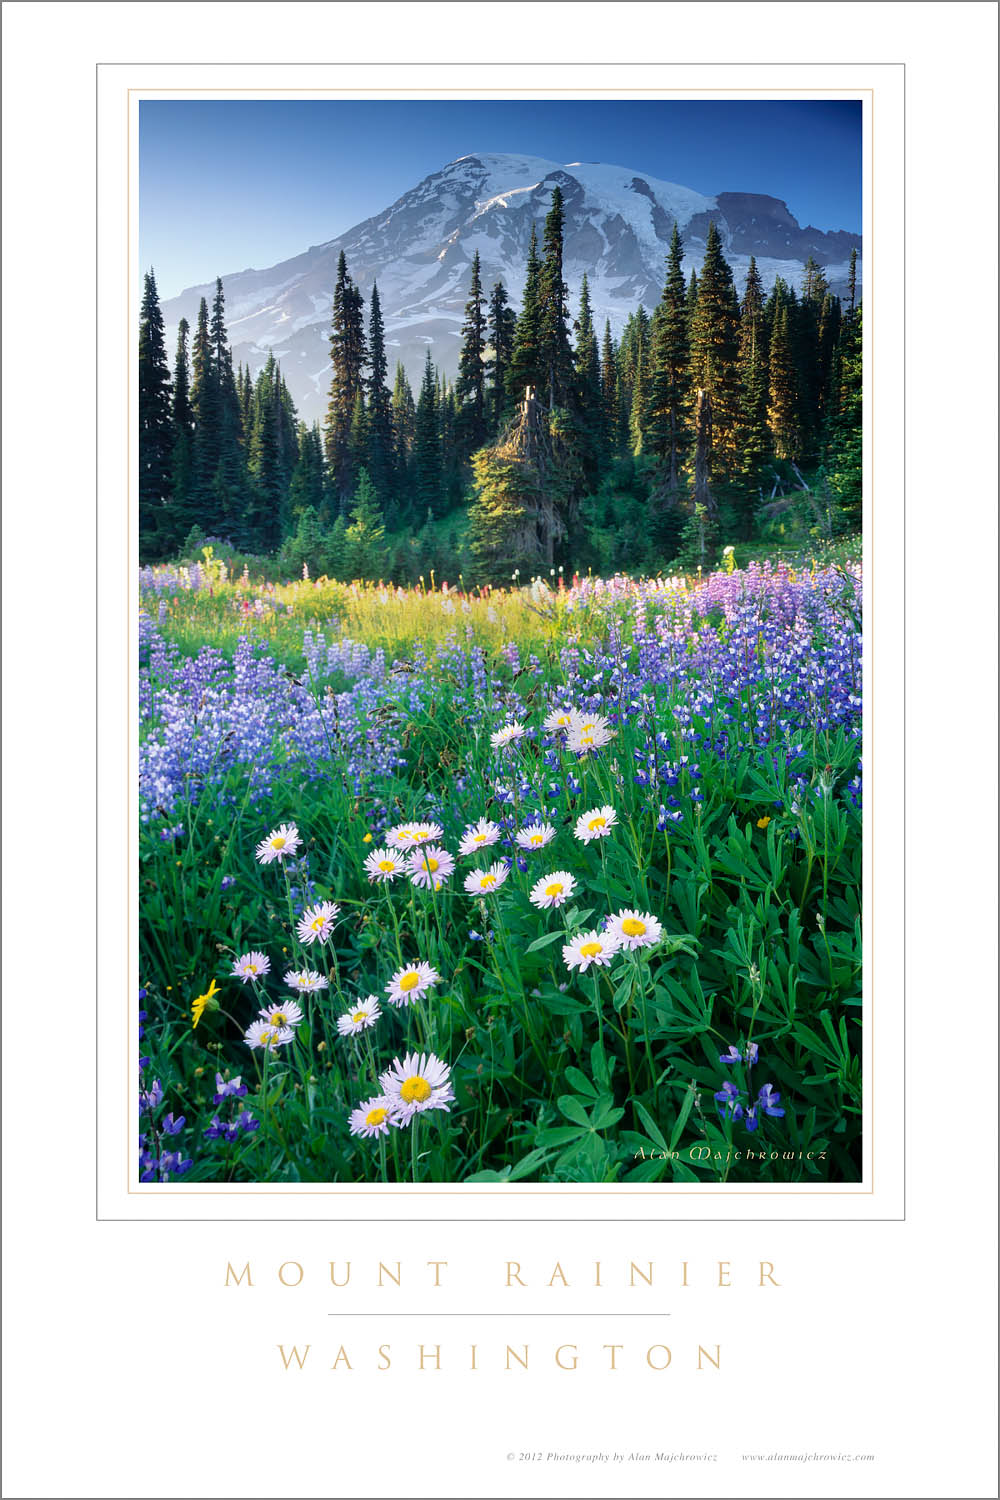 Paradise wildflower meadows, Mount Rainier National Park Washington